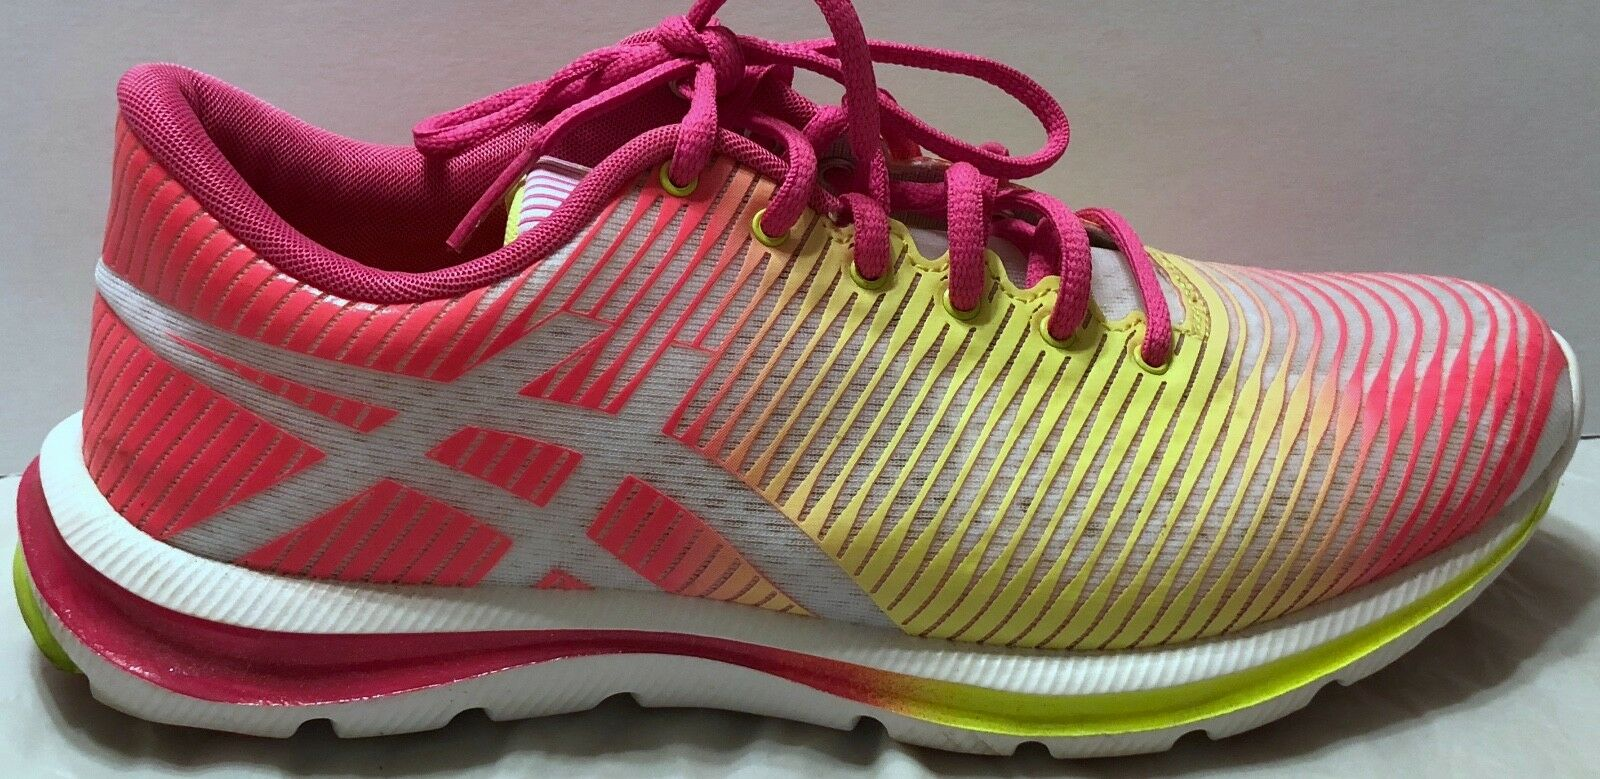 Asics 33 Fluid Axis Pink Pink Pink Yellow Multi-Farbe Running Schuhes Größe 7.5 Bright Neon 7ba4b3